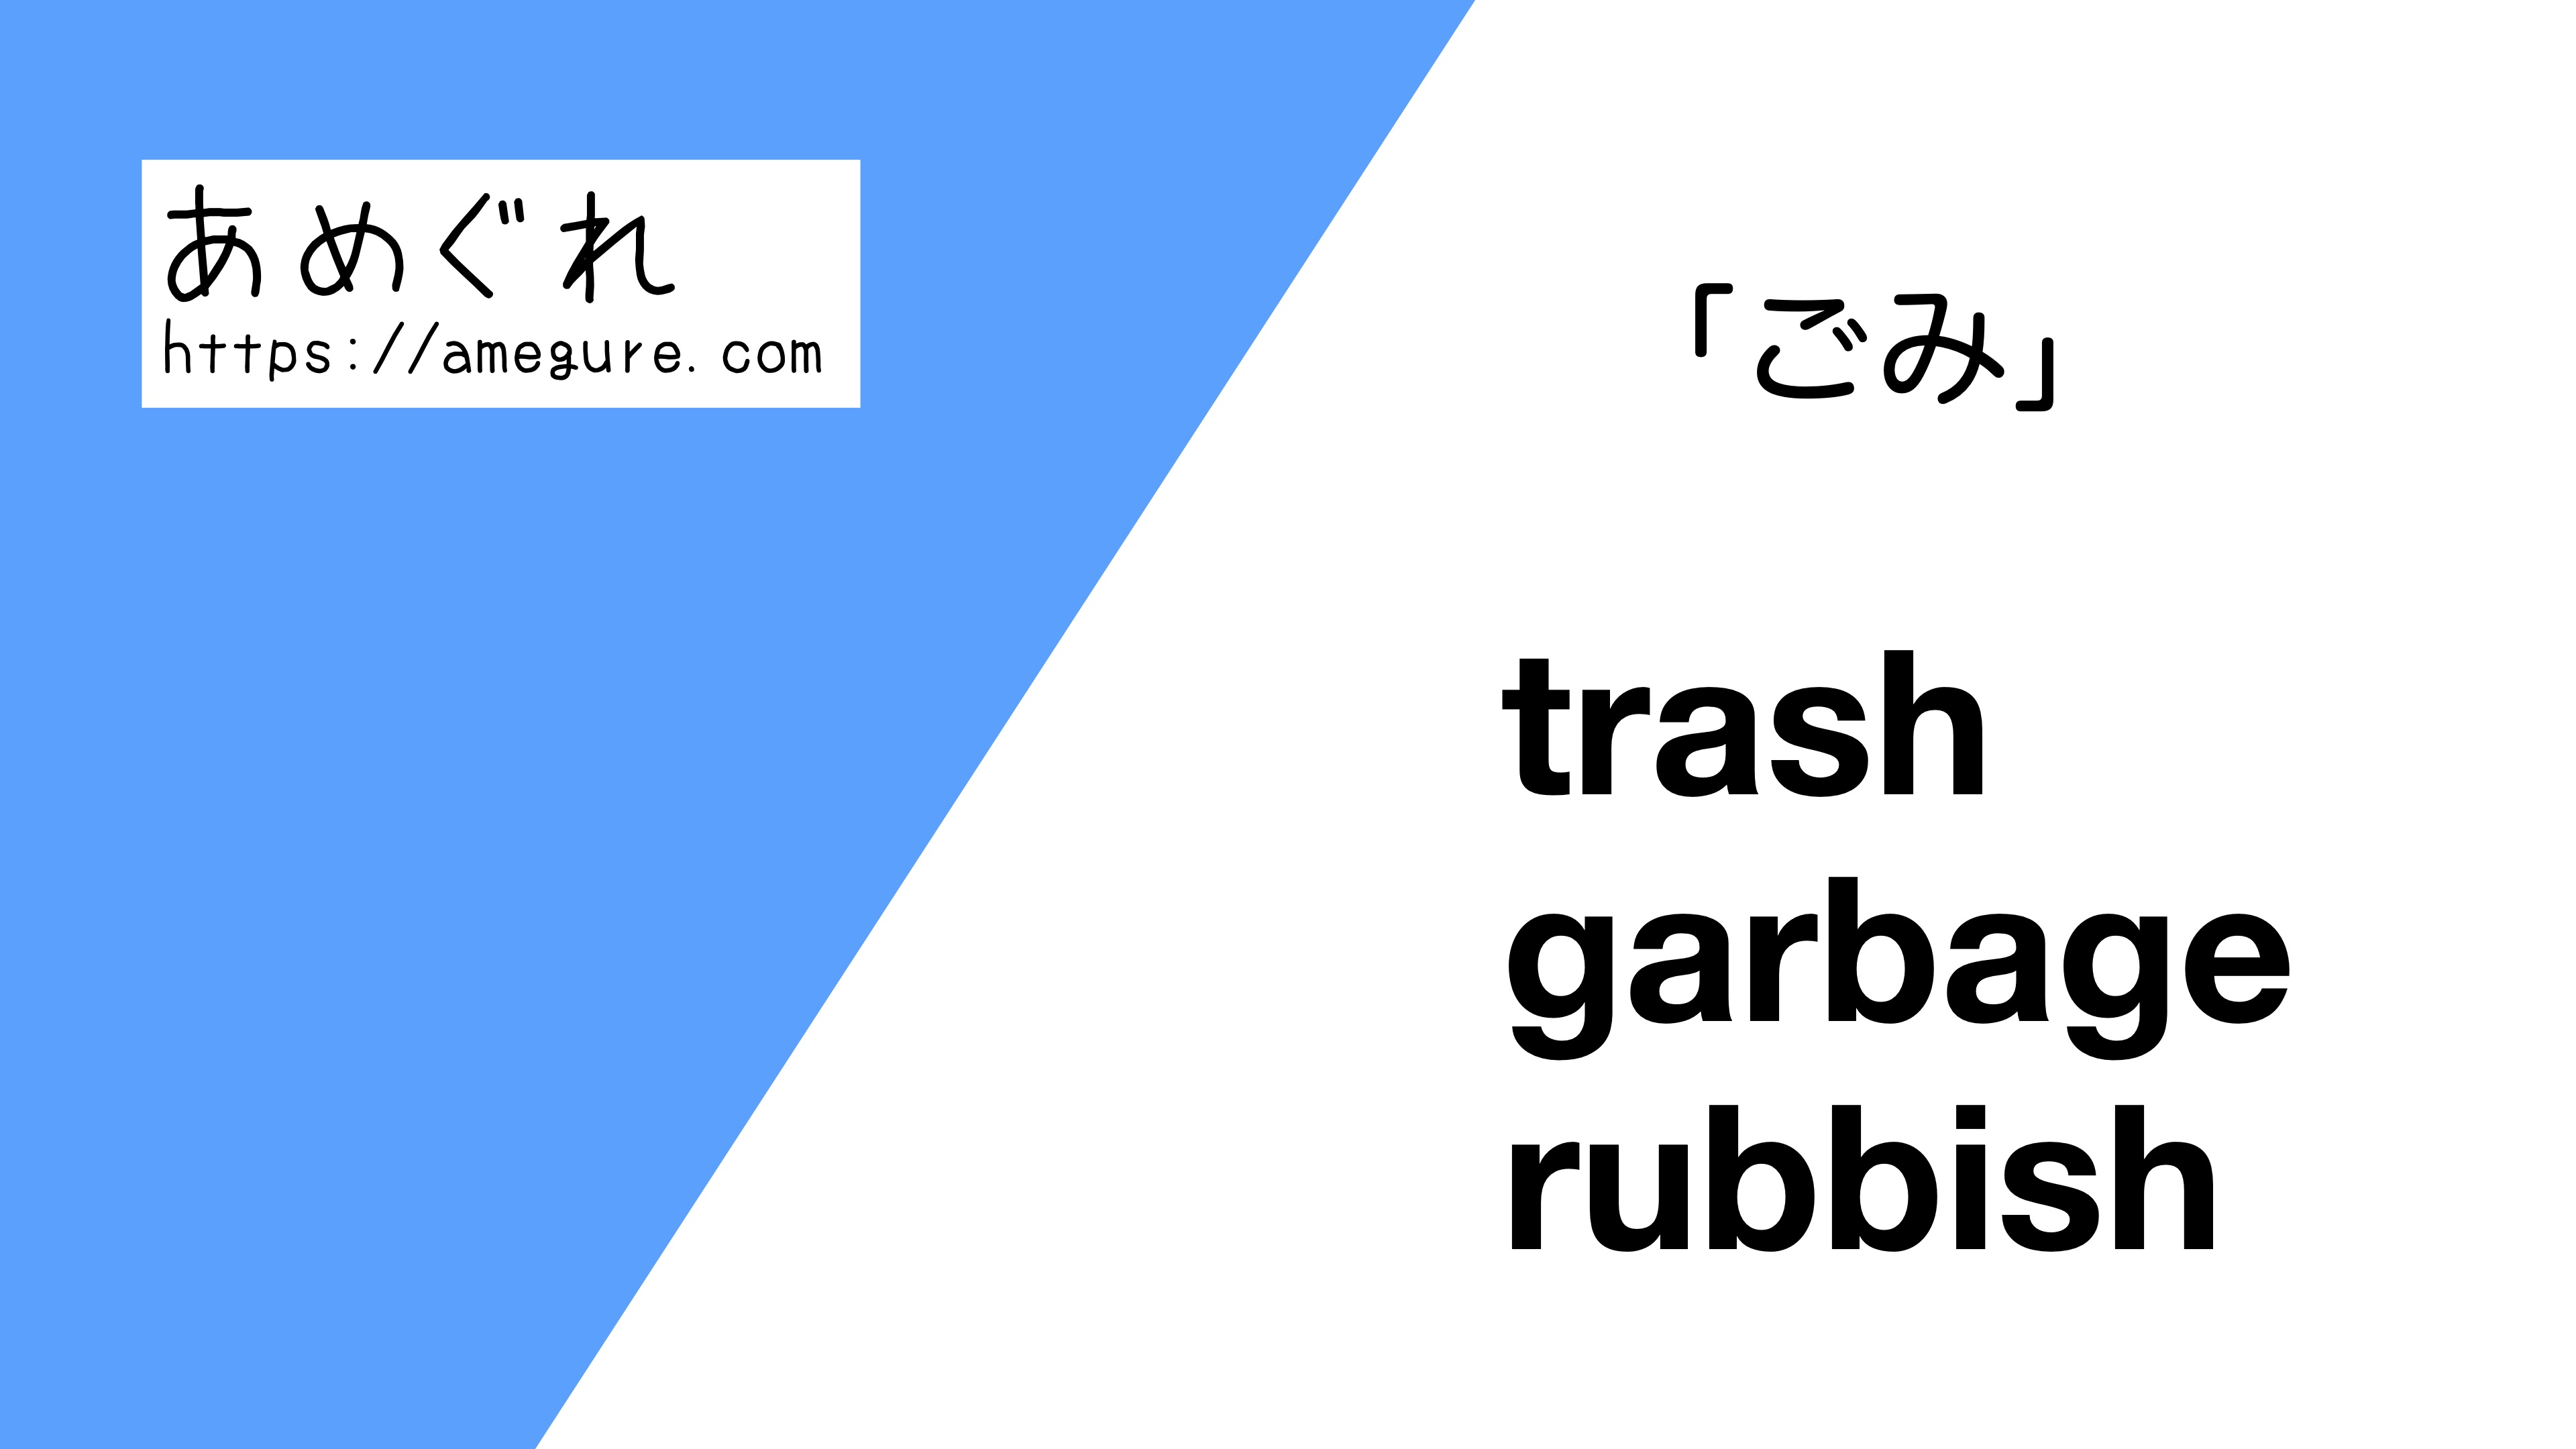 trash-garbage-rubbish違い